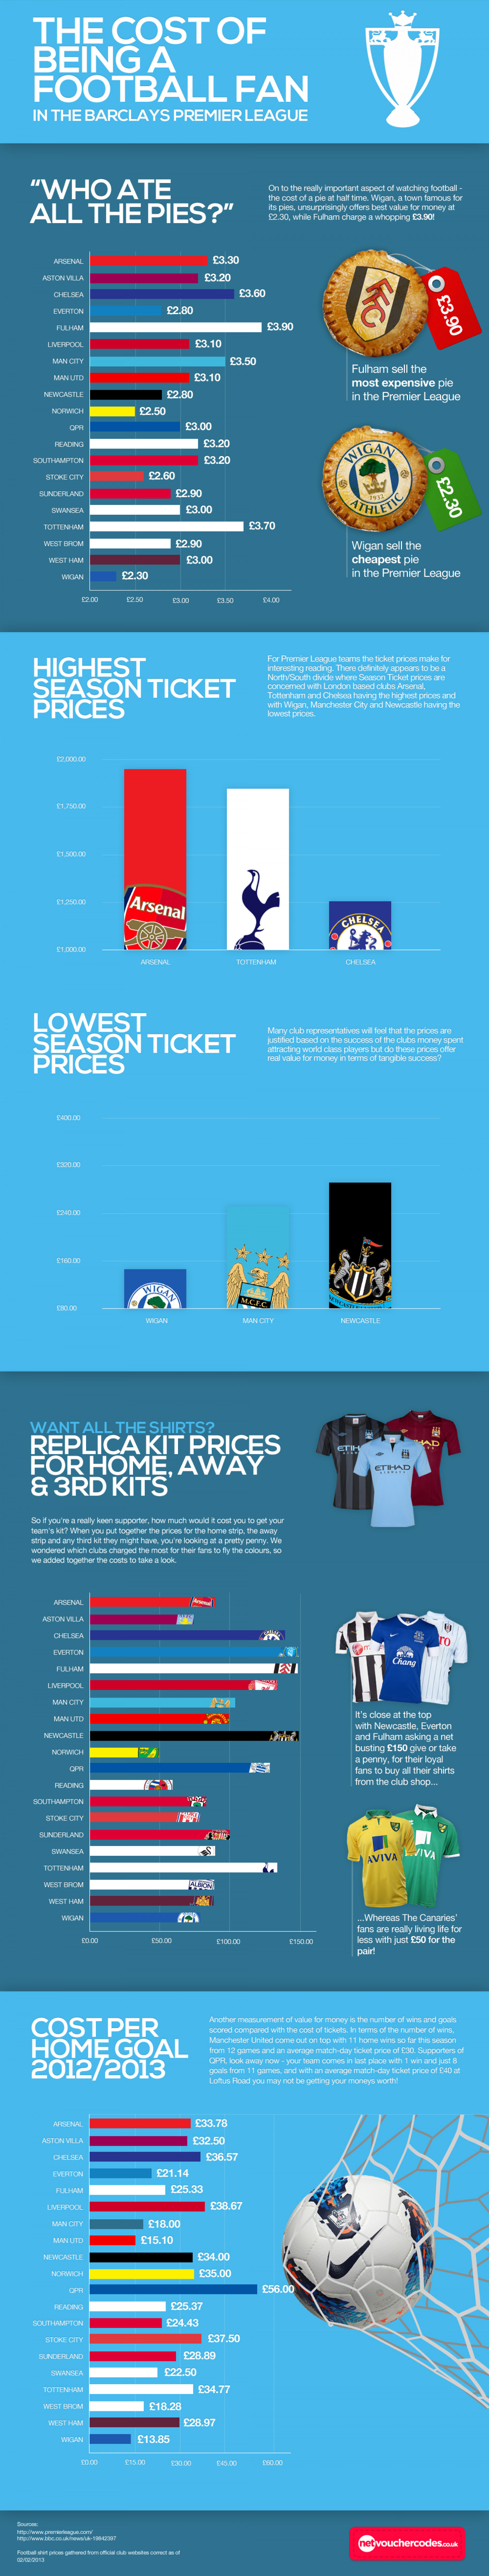 The Cost of Being a Football Fan Infographic